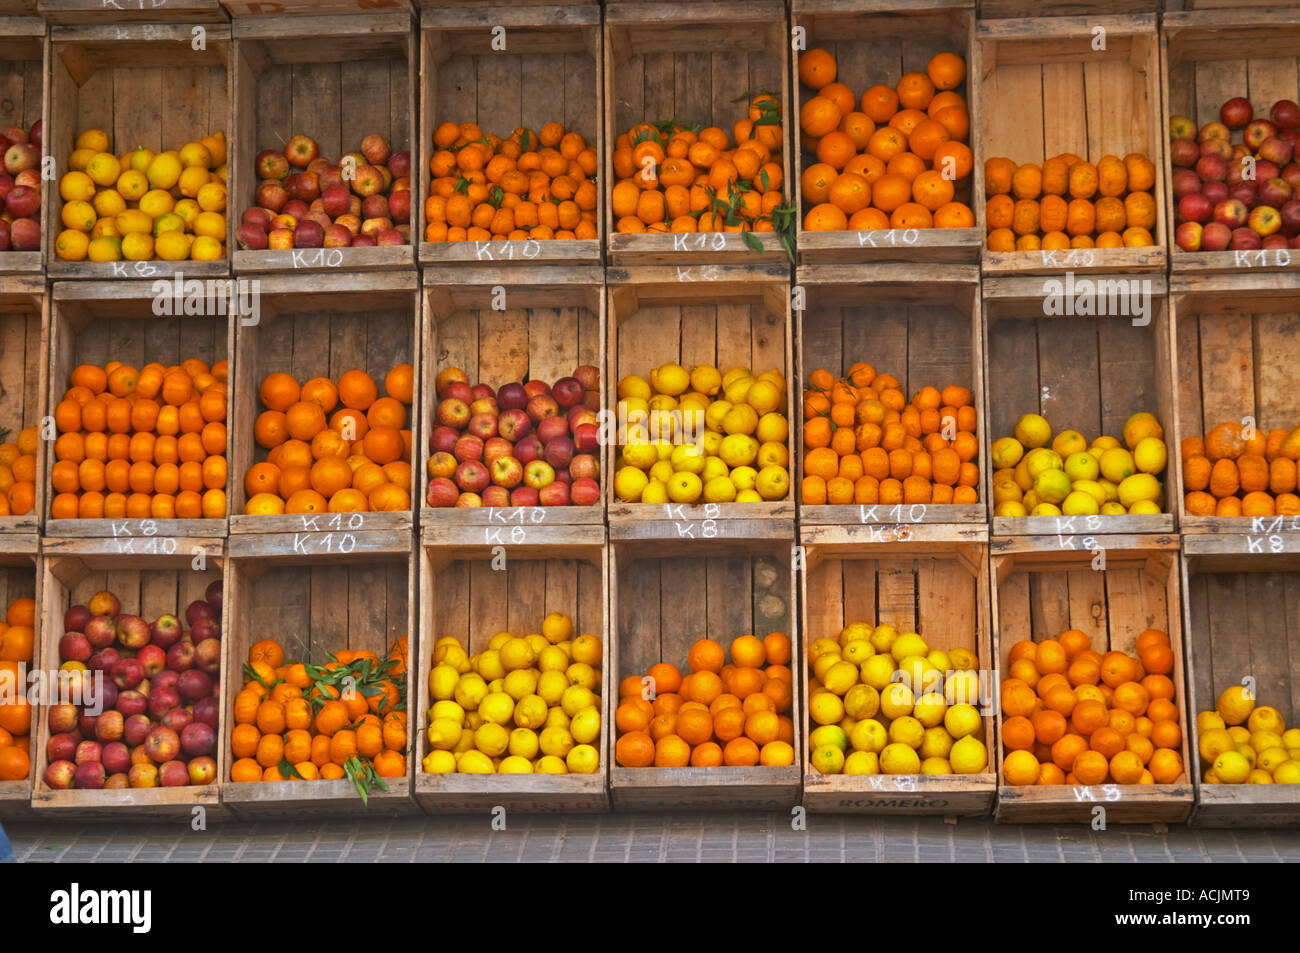 A Fruit And Vegetable Shop Displaying Products In Wooden Crates On The Street Tomatoes Many Types Of Oranges Lemons Apples